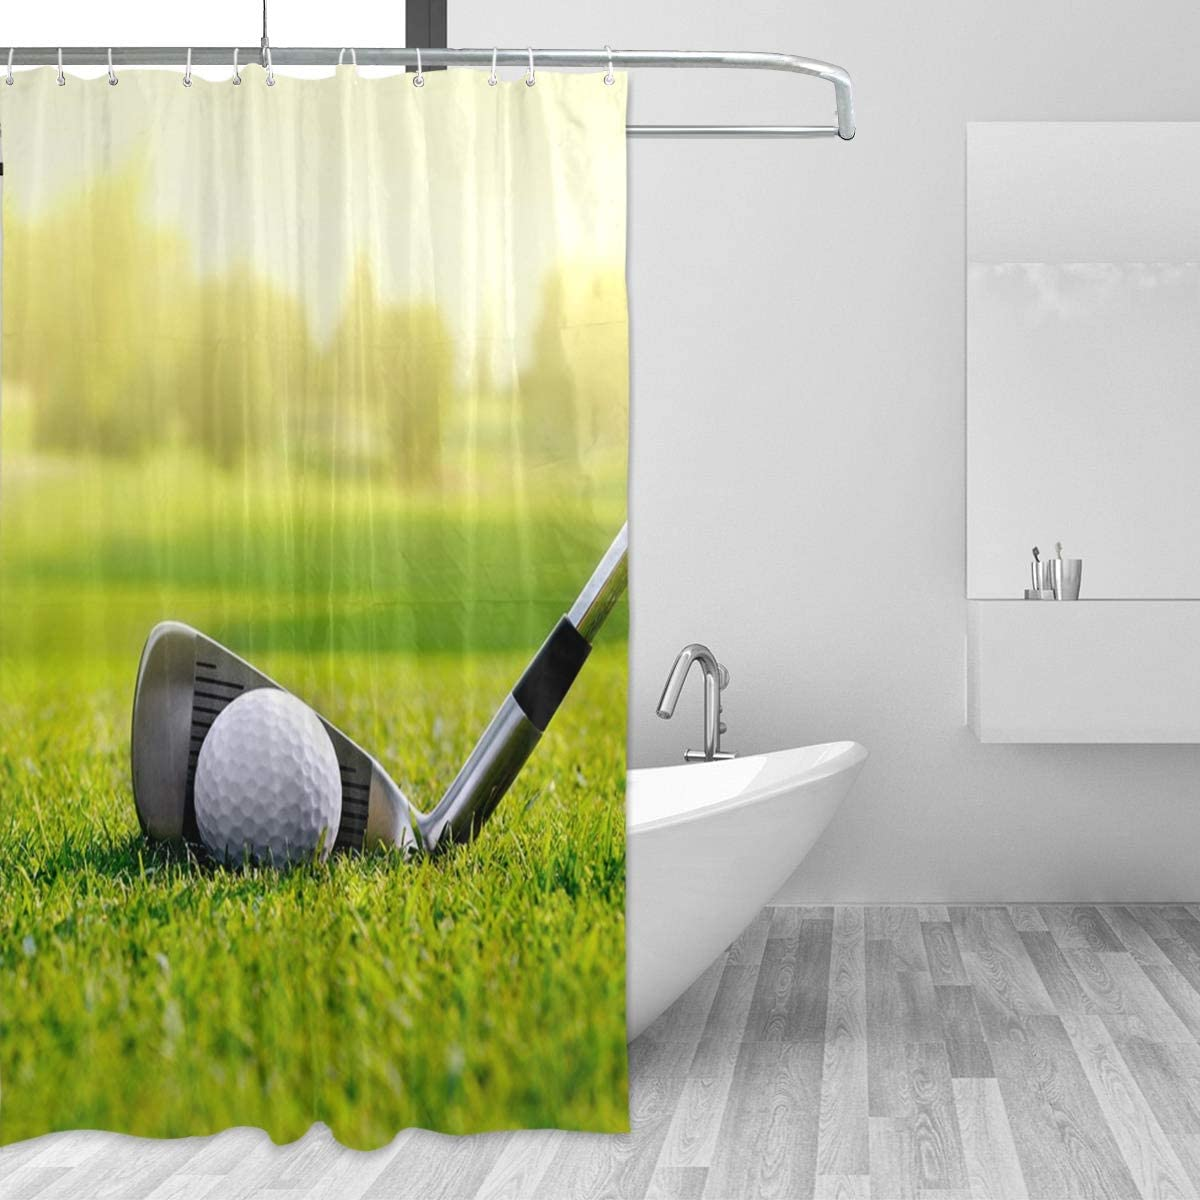 Amazon Com Titlesign White Golf Ball On The Course Waterproof Shower Curtain Bathroom Decor 72 X 72 Home Kitchen